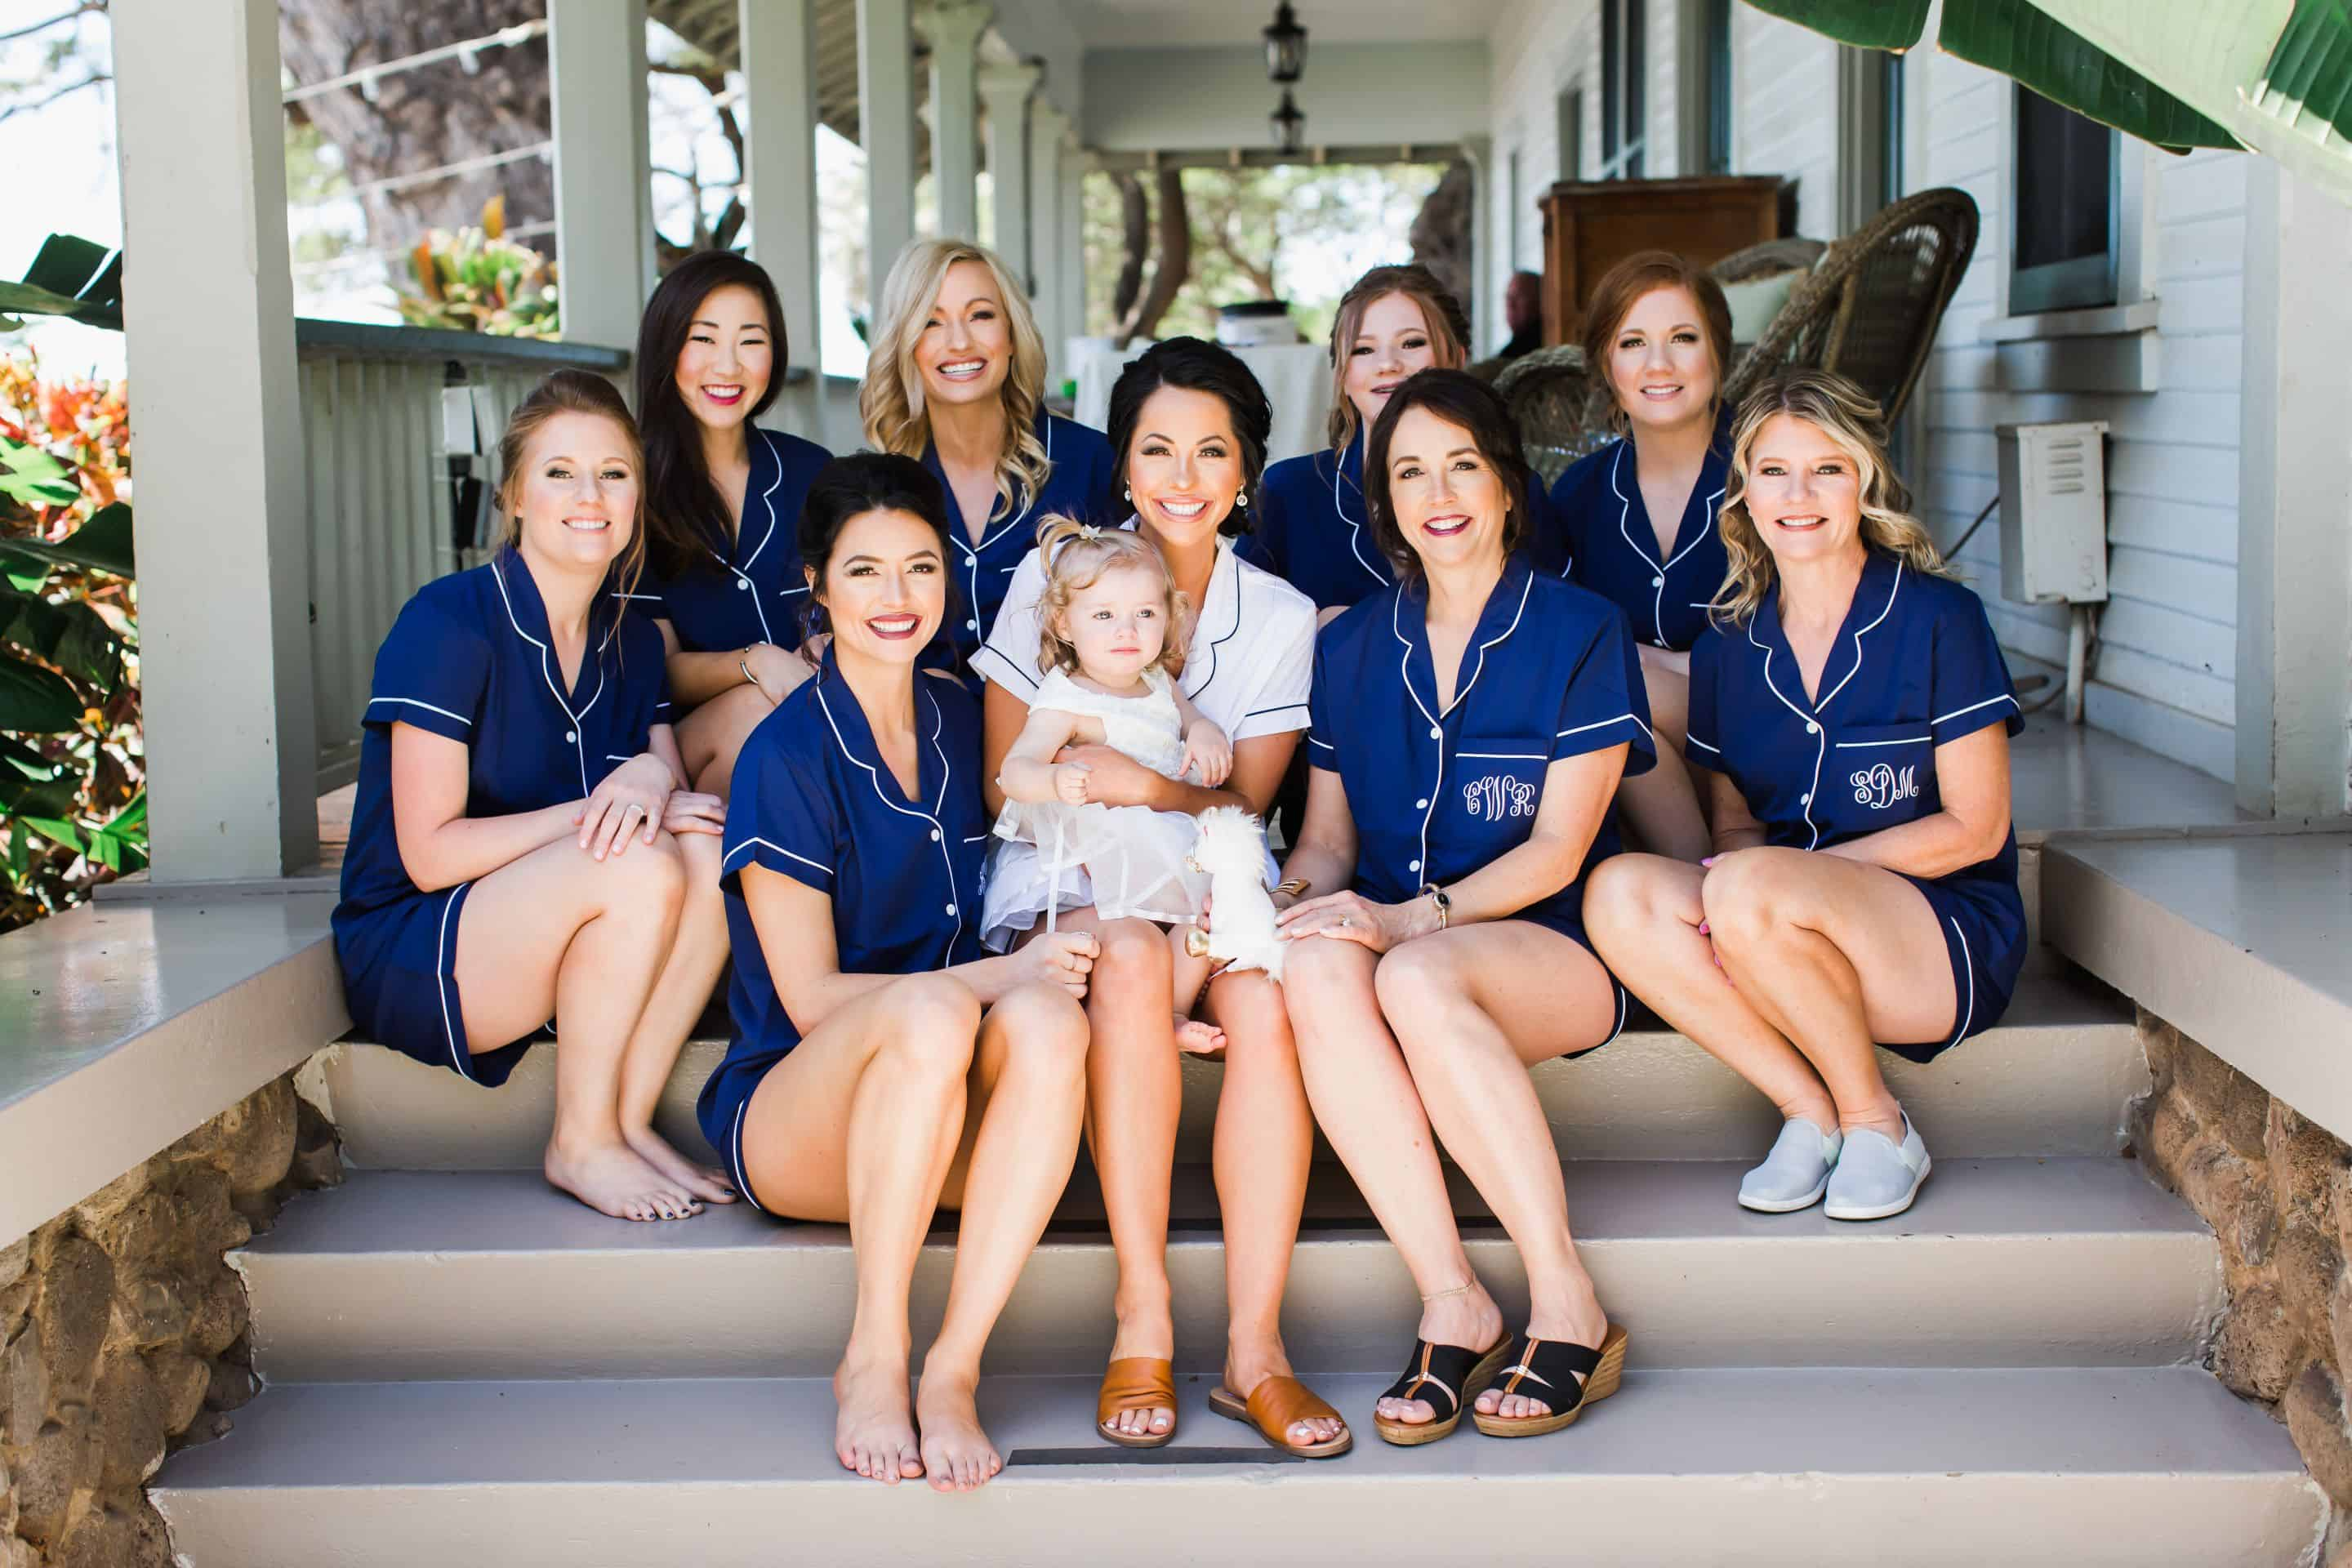 Destination bridesmaids in getting ready pj's | Maui's Angels